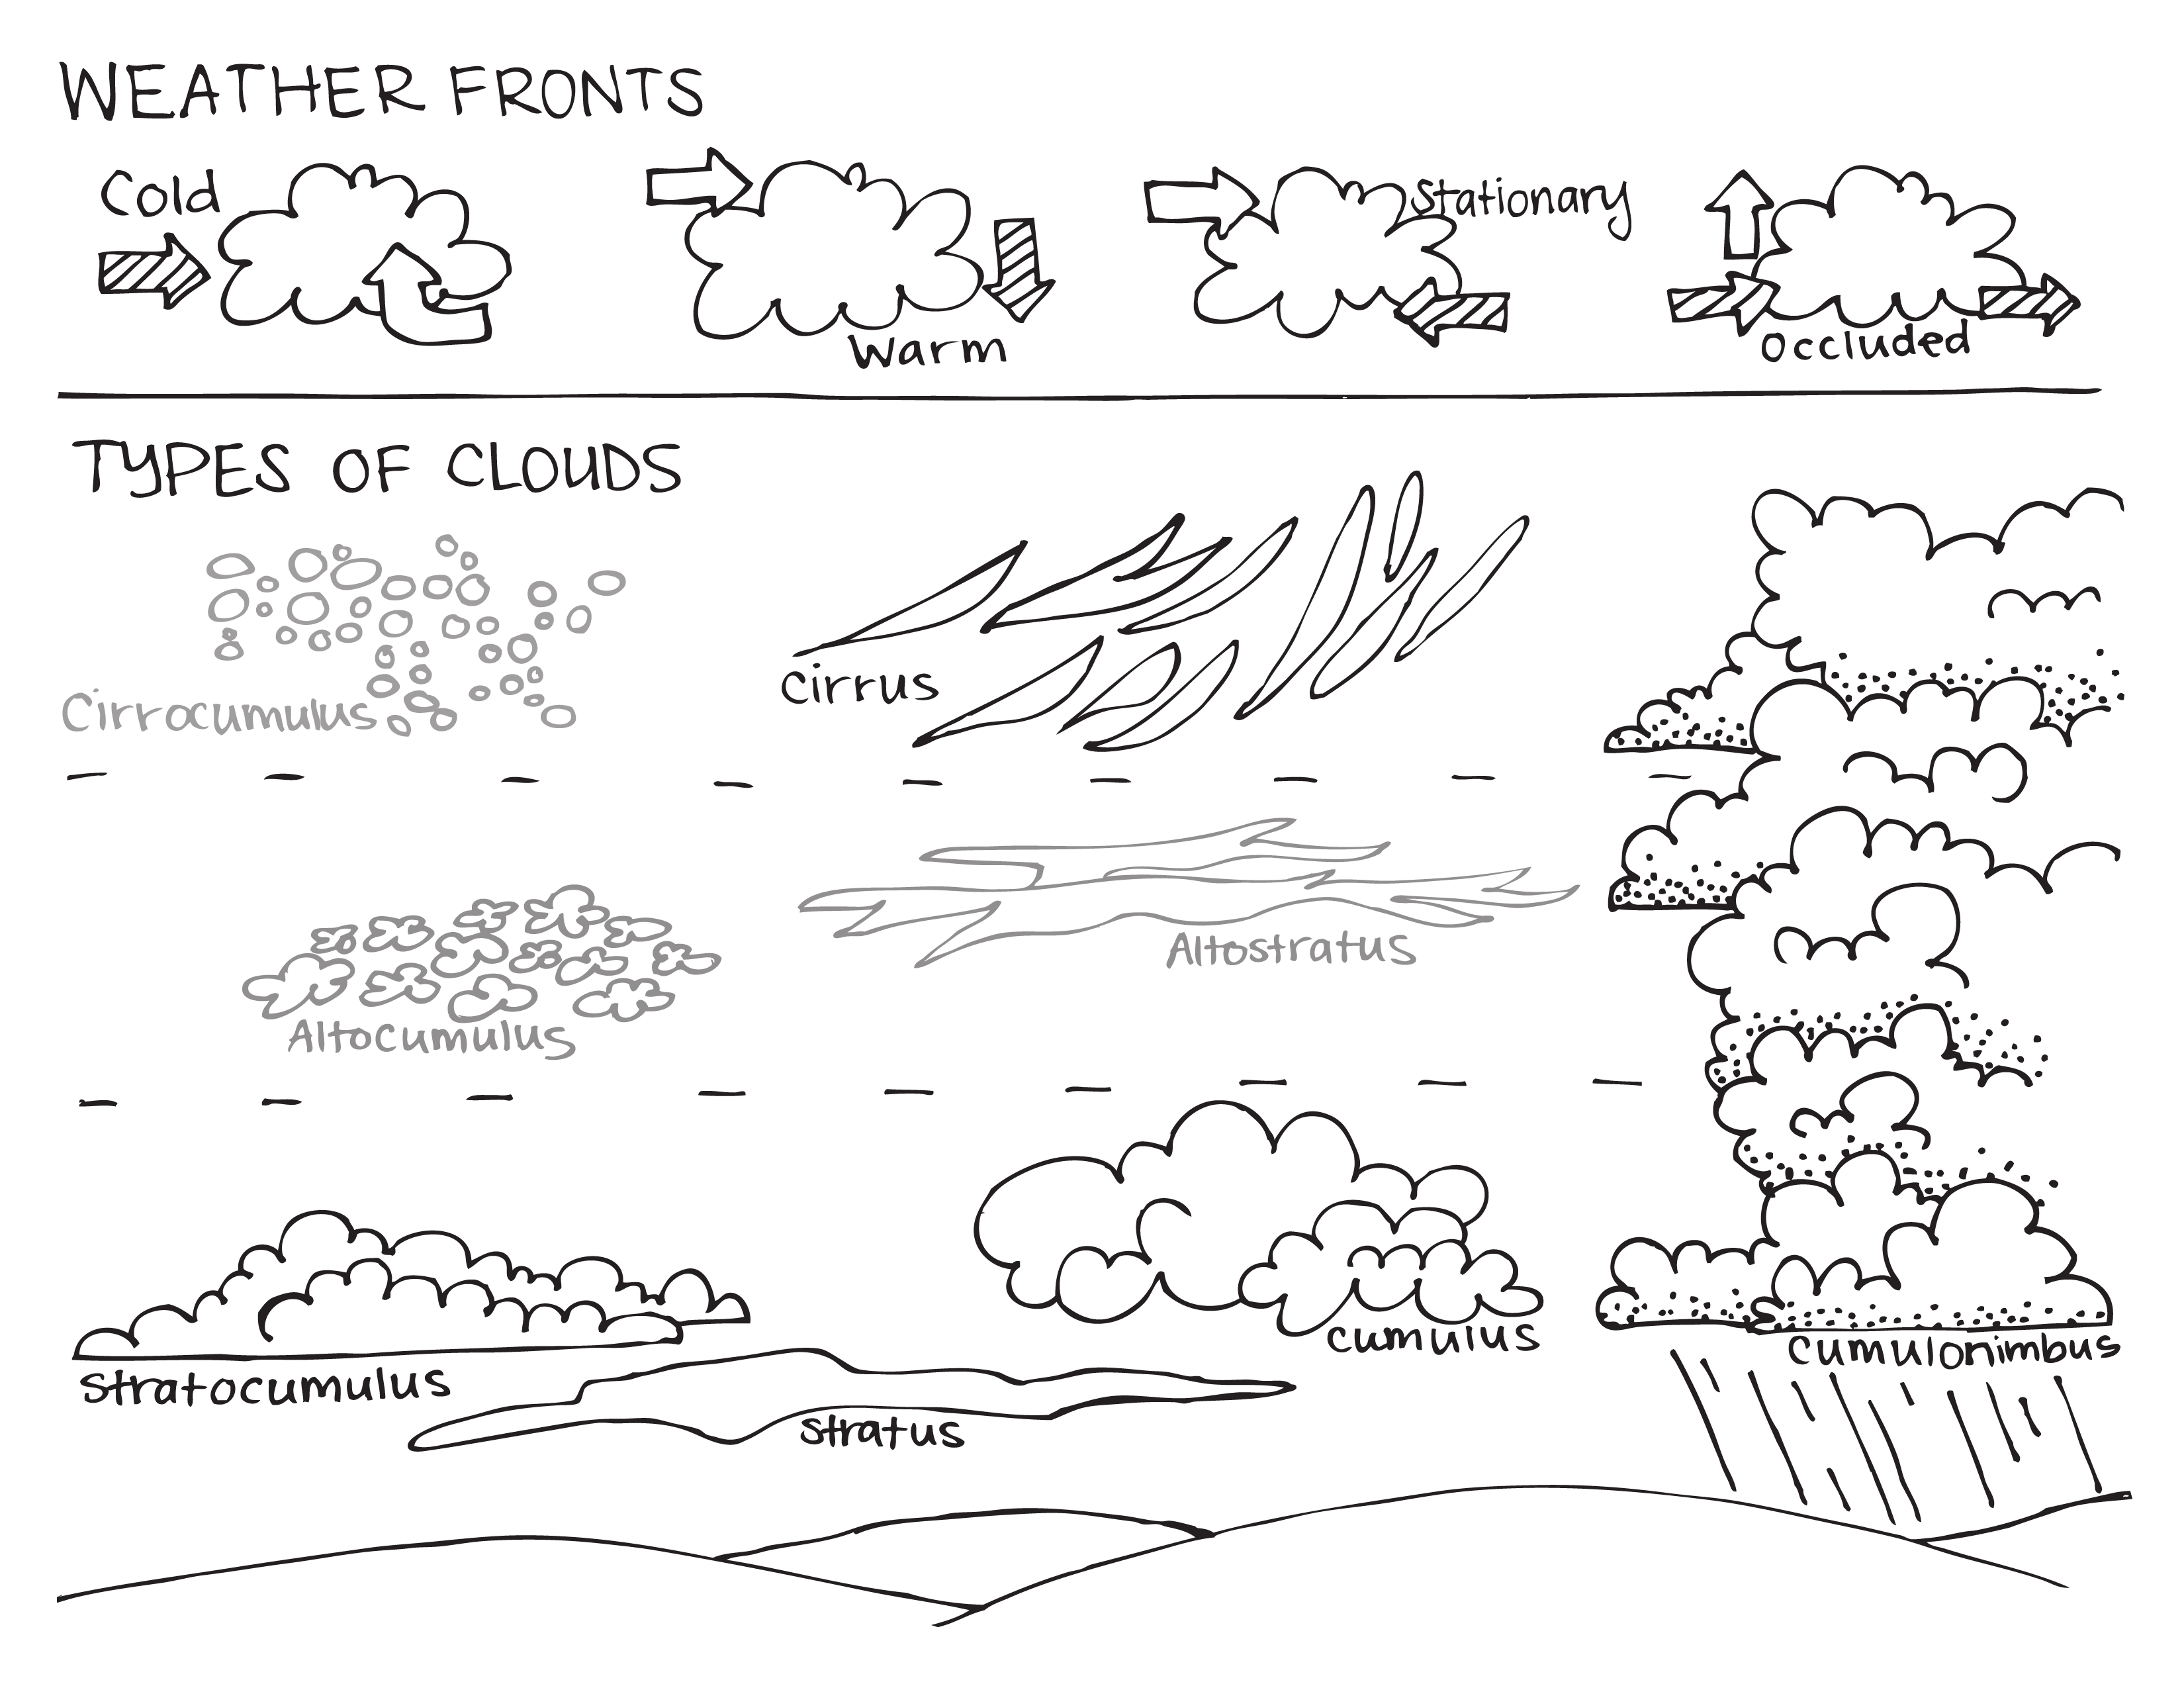 worksheet Weather Fronts Worksheet parts of a volcano classification volcanoes types learning about the different weather fronts and clouds coloring page mytravelfriends